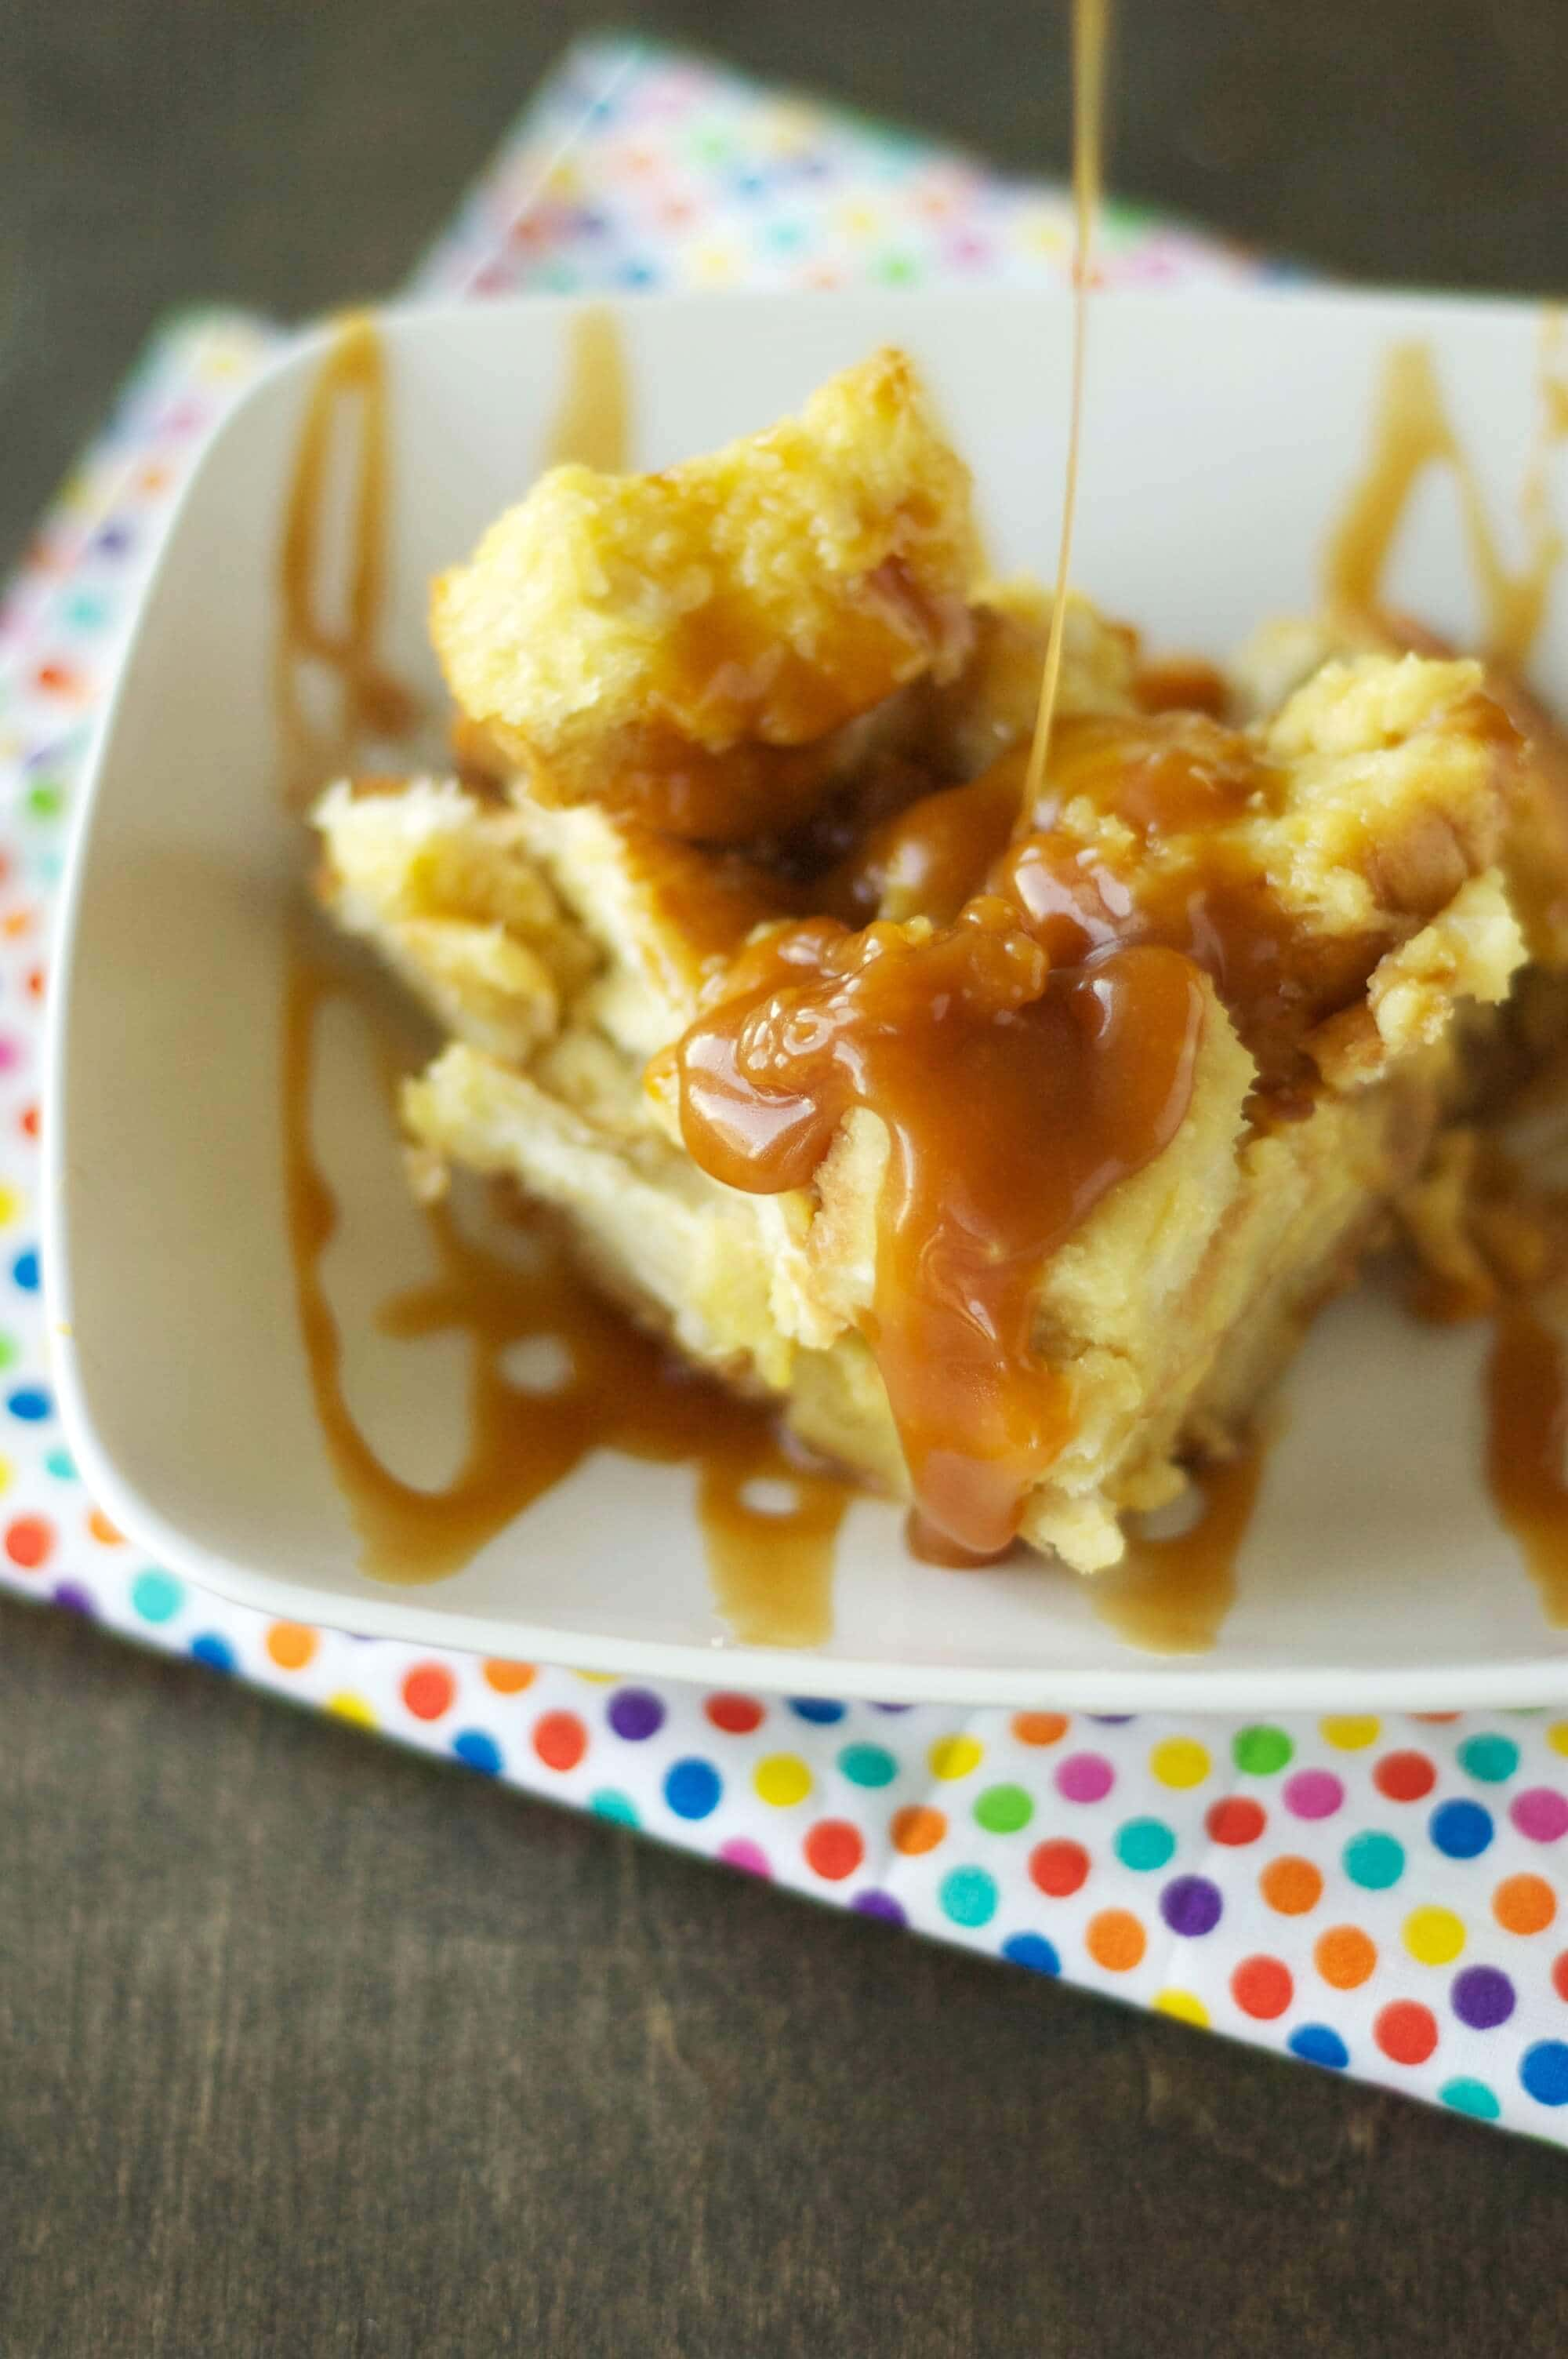 Crockpot Bread Pudding with Salted Caramel Sauce